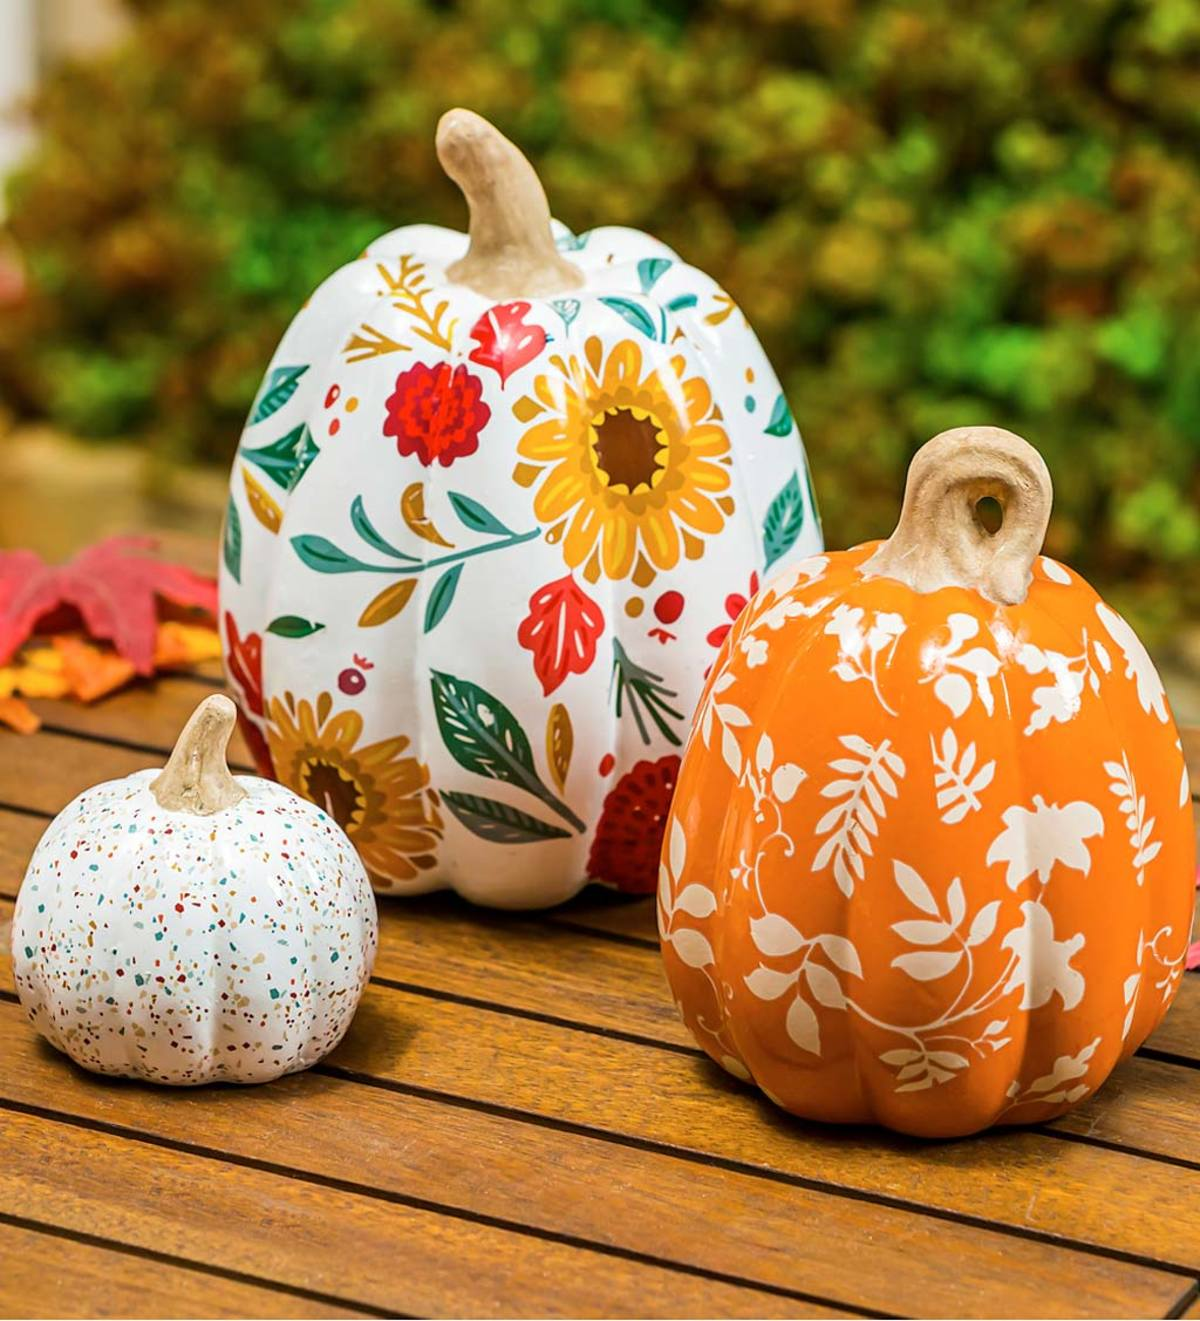 Pllieay 3 Pieces 12 Inch Unfinished Wood Pumpkin Cutout for Fall Pumpkin D/écor Thanksgiving and Halloween Yard Decoration